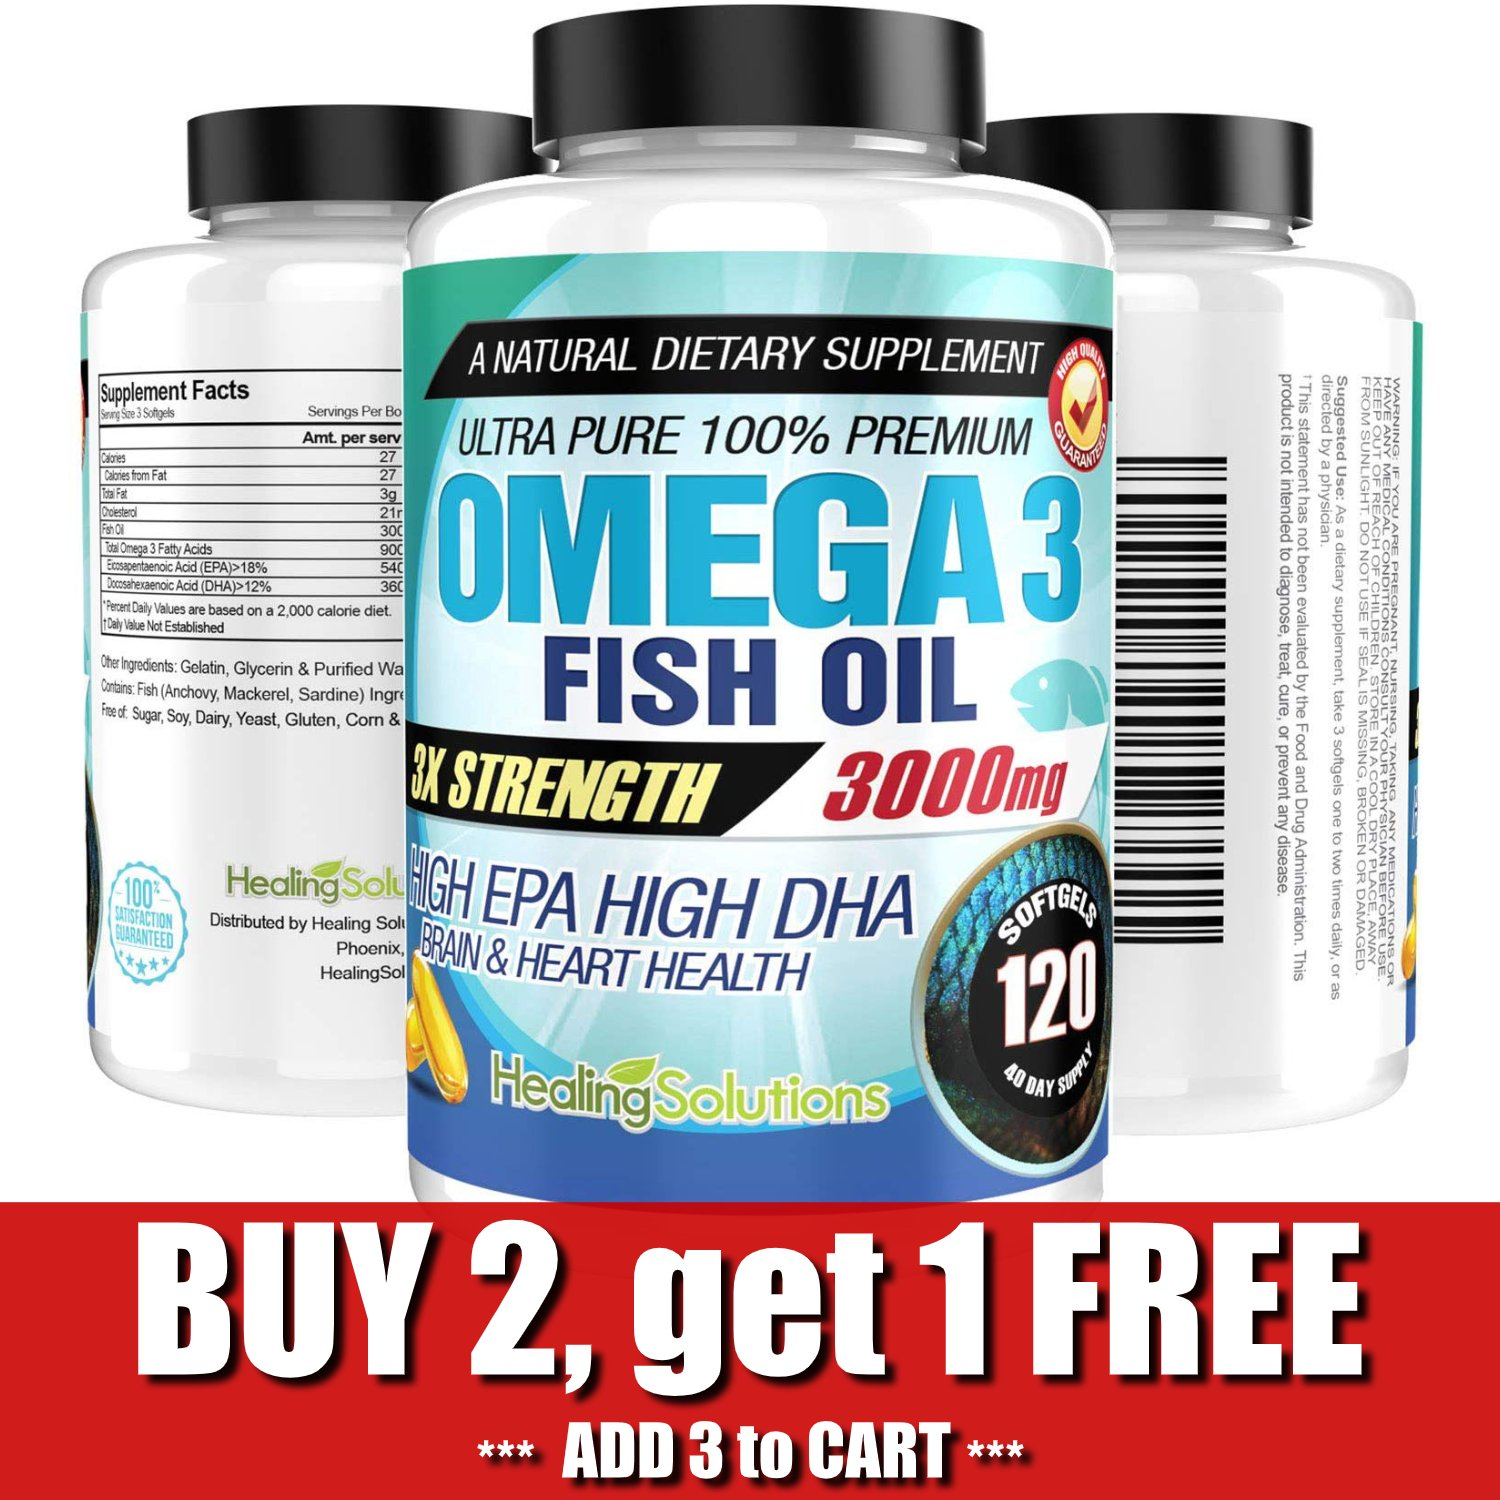 UNA SELLER Ultra Pure Omega 3 Fish Oil 3000mg Small, Potent, Joint Pain Relief - XL 120ct